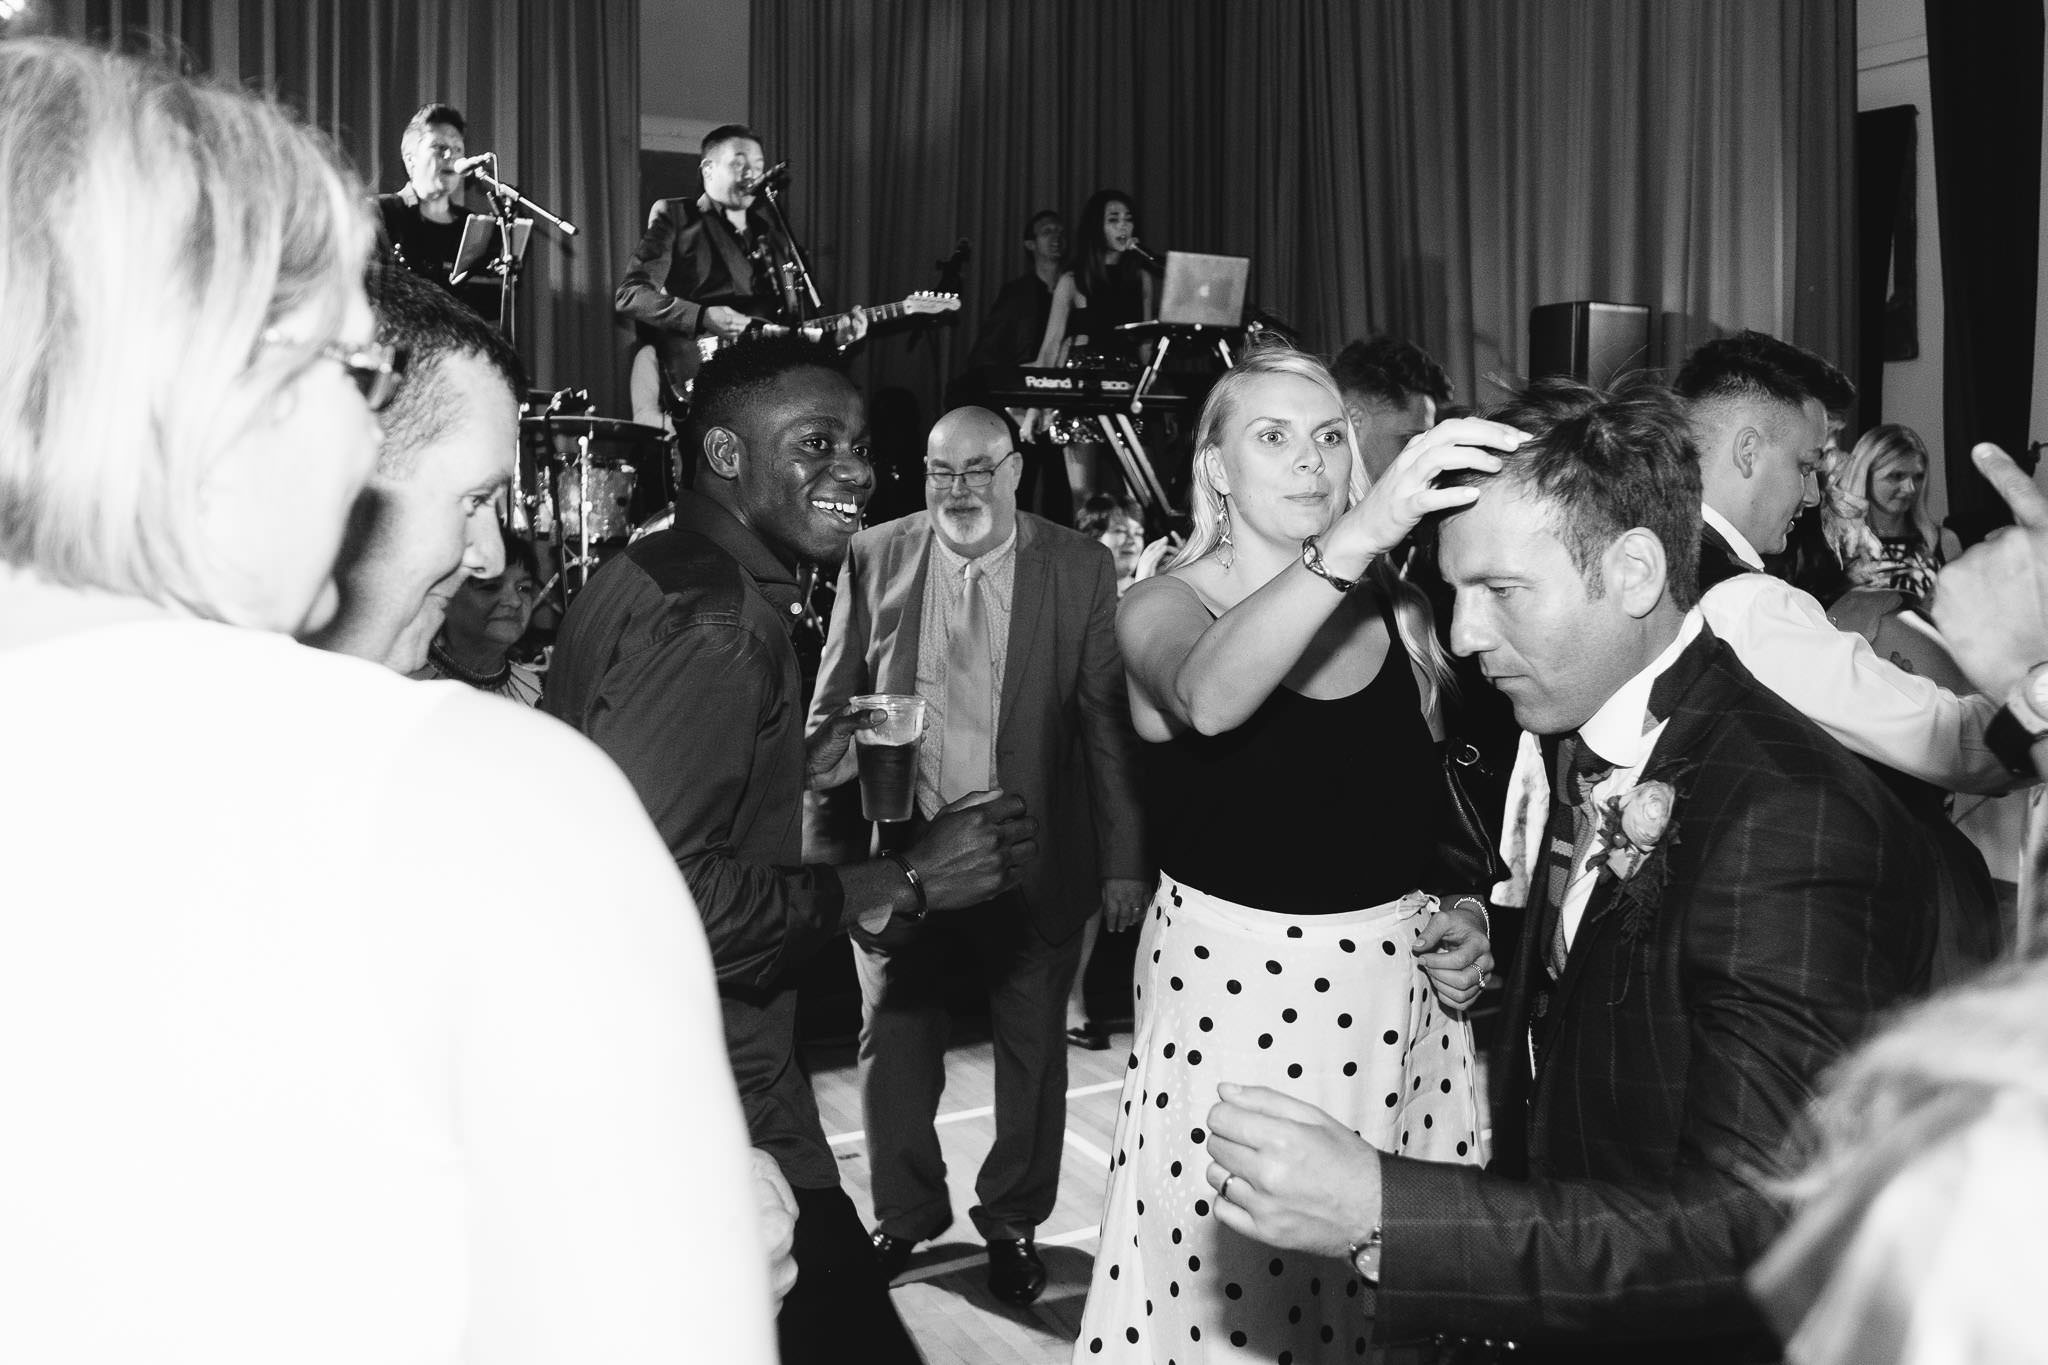 A black and white photo of a guest ruffling the groom's hair on the dance floor